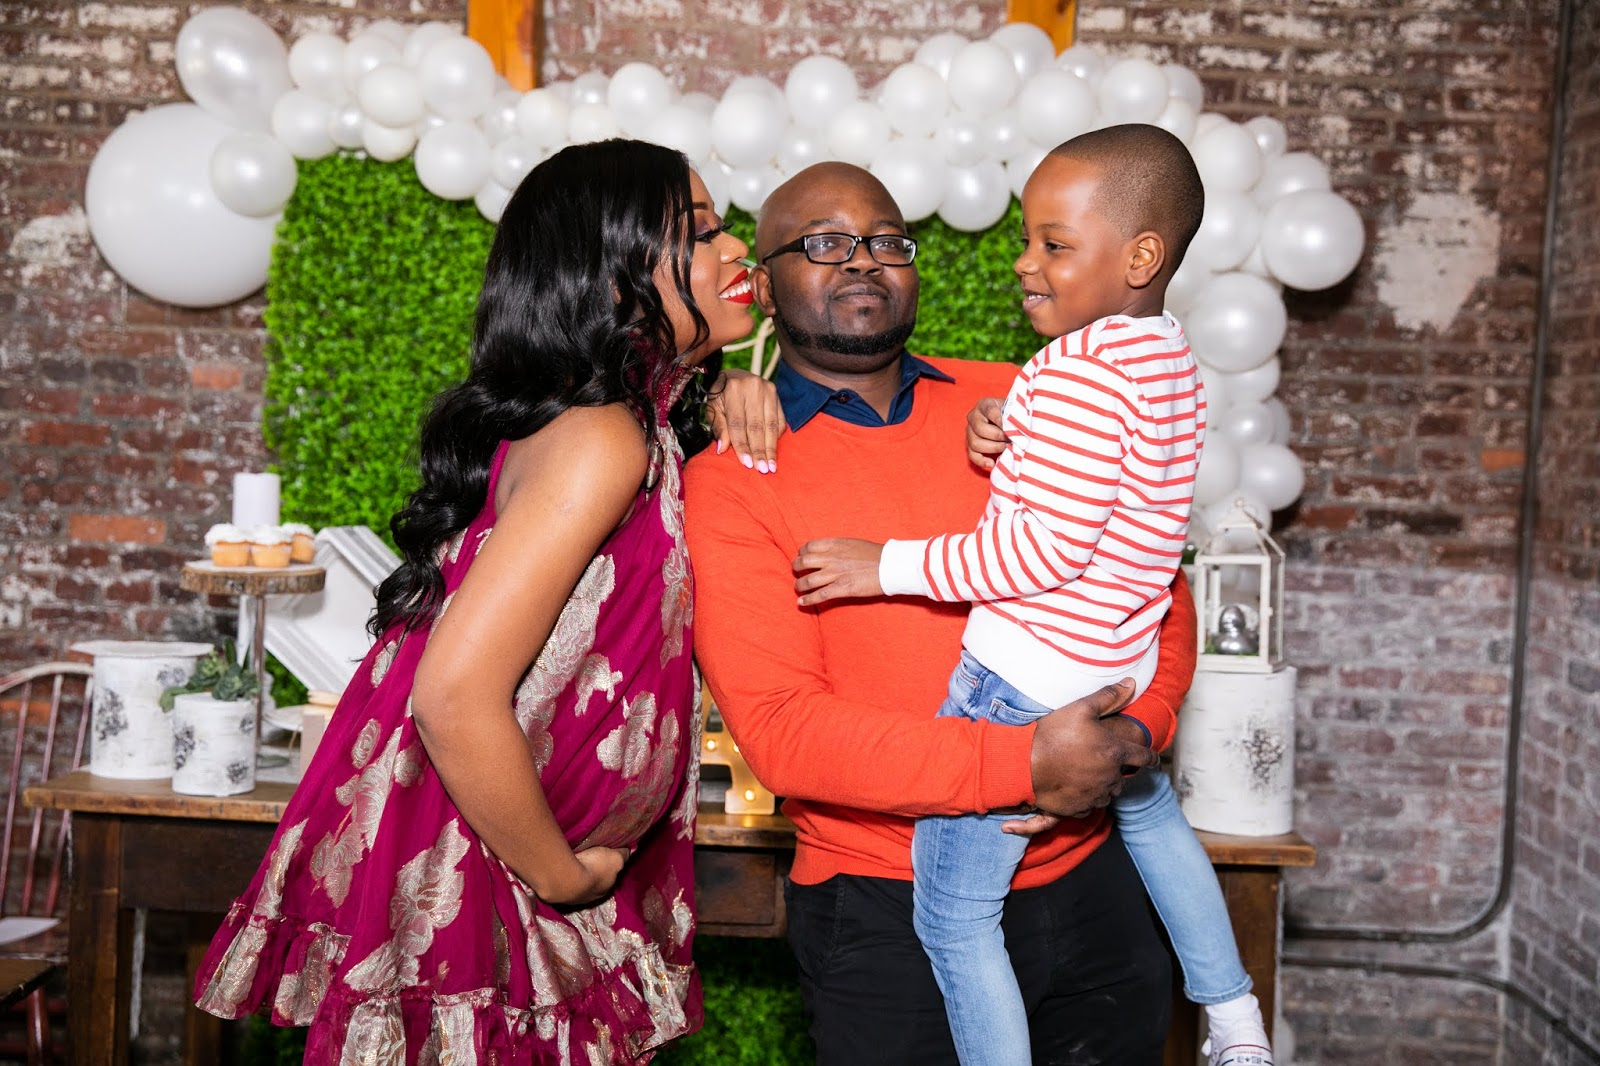 Stella-Adewunmi-of-Jadore-Fashion-share-baby-shower-and-family